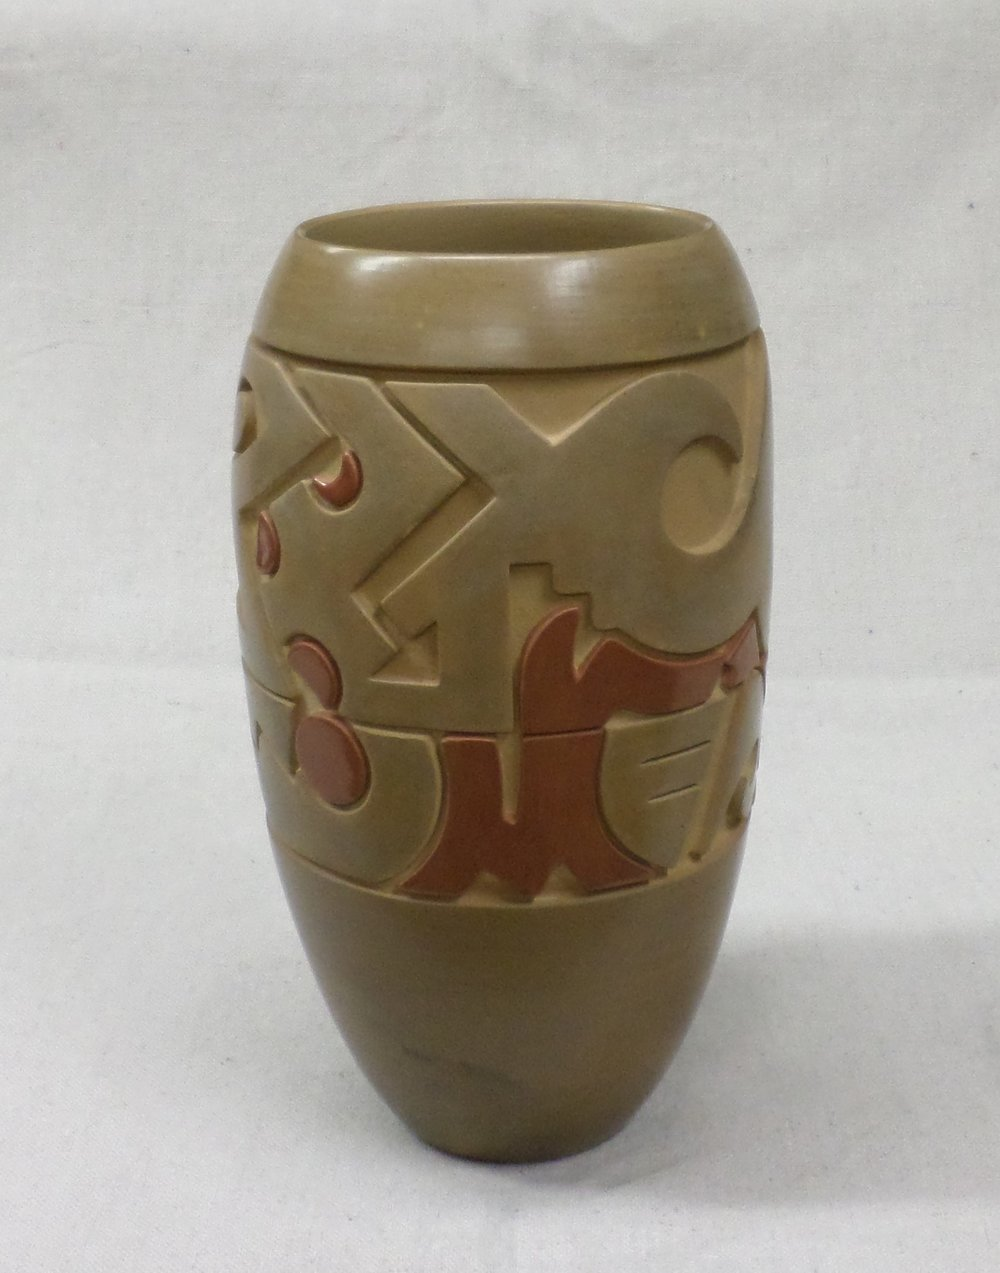 "Red - on - Gold Vase with various designs representing a storm including lightning, clouds, rain, water and phases of the moon  9-1/2"" H X 5-1/2"" Dia.  Price:  $1,800."